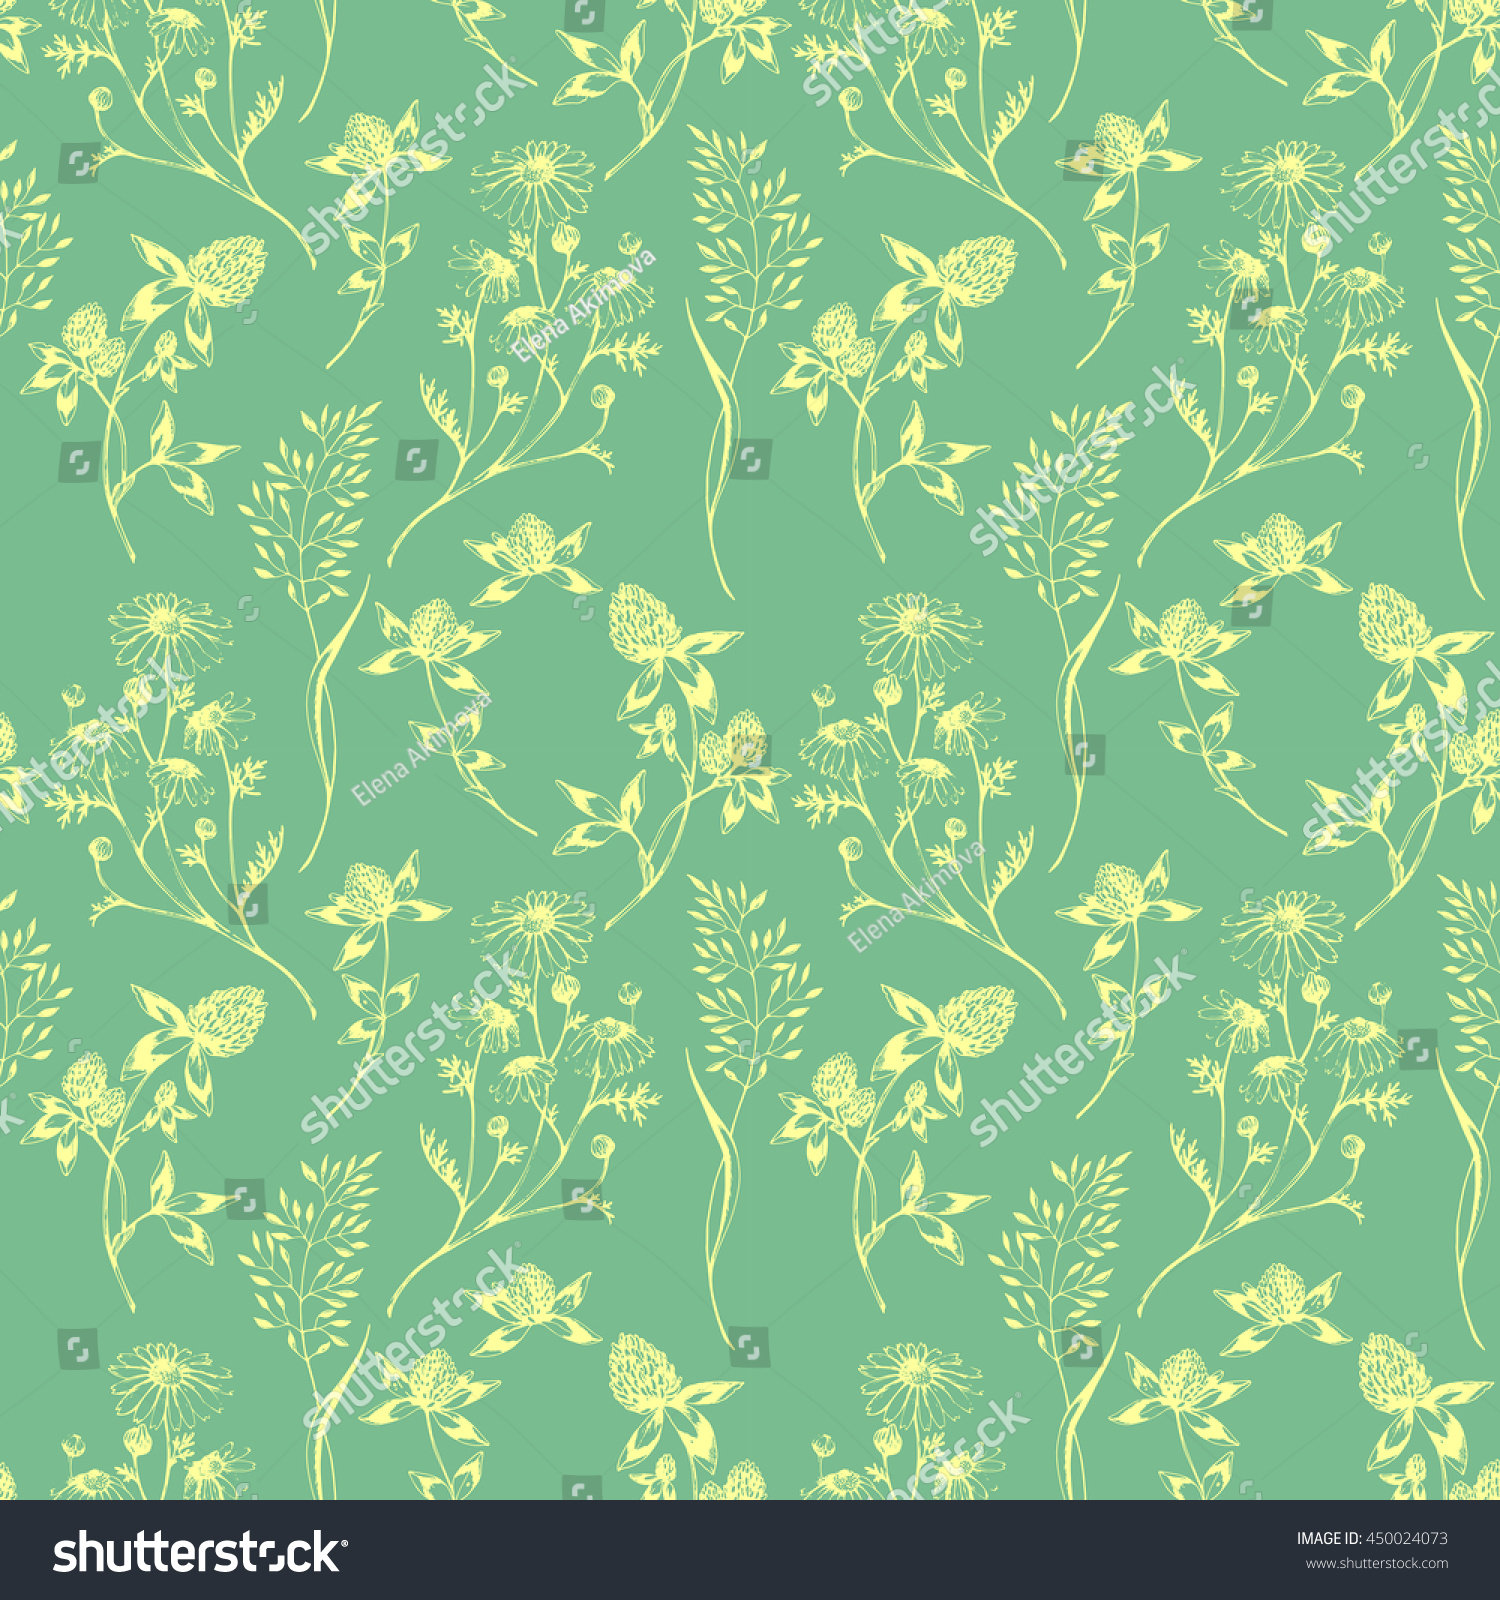 Herbal Wallpaper Vector Seamless Floral Green Pattern With Wild Herbs And Flowers